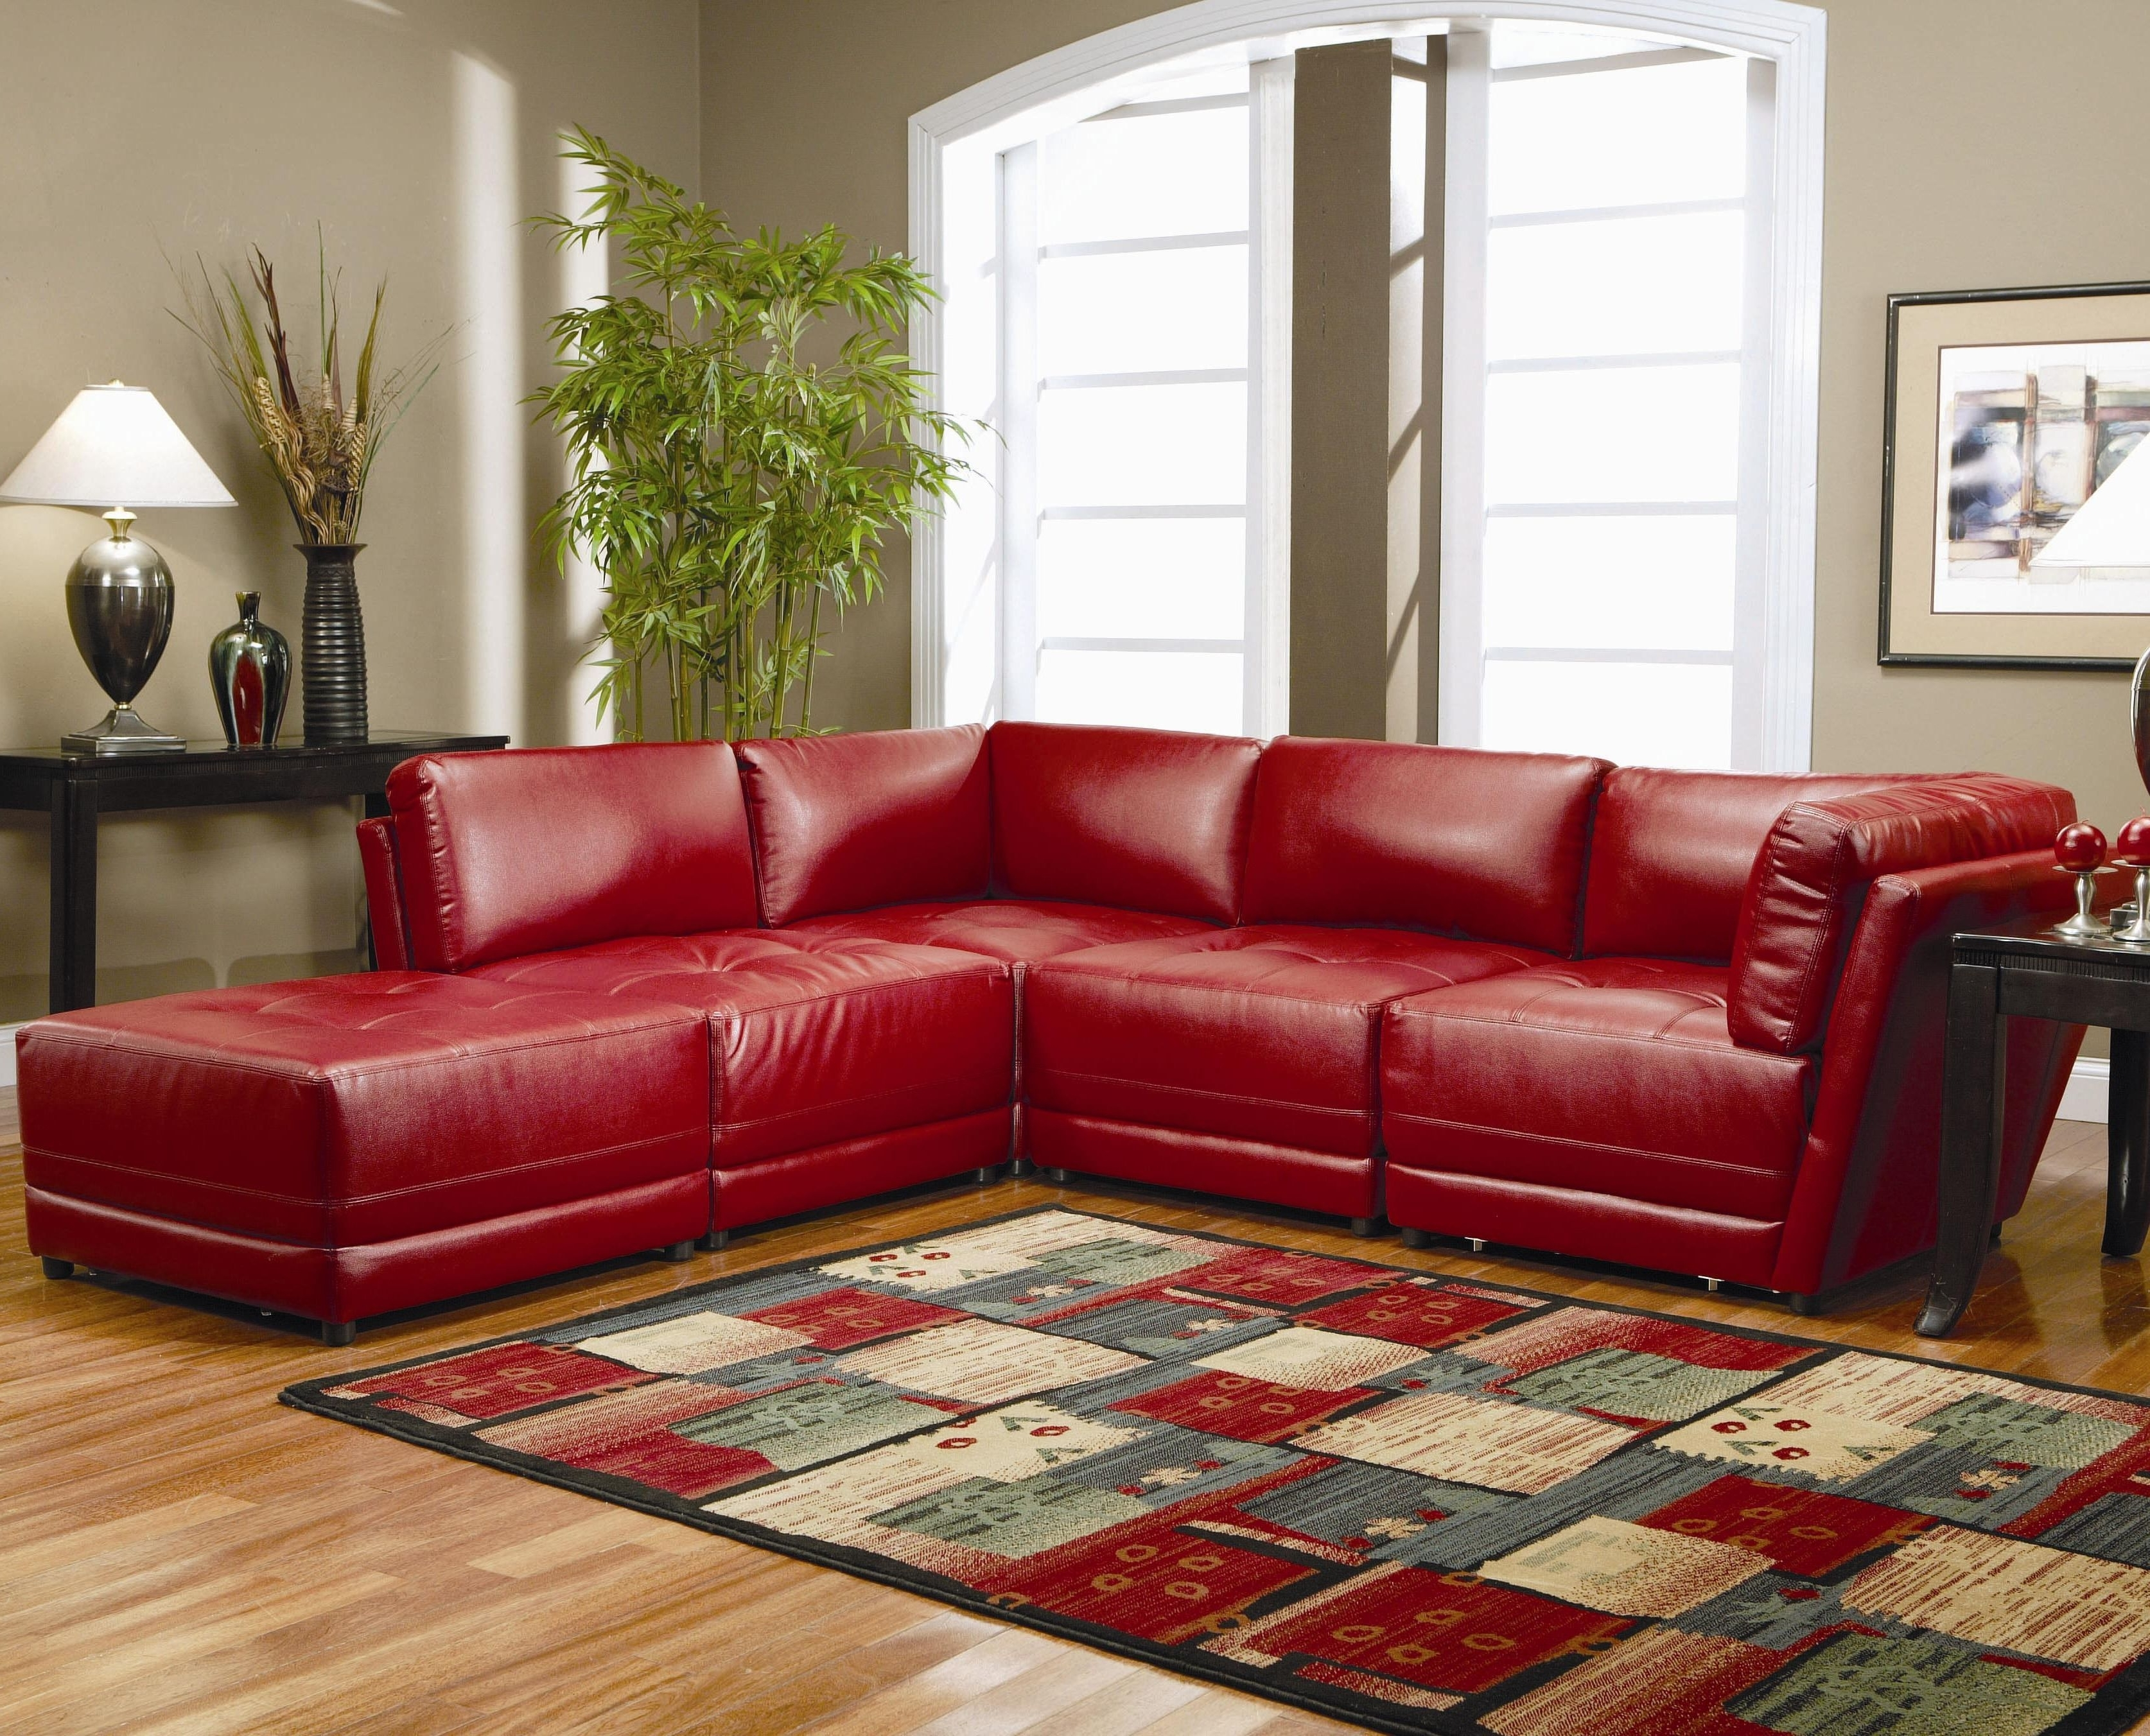 Red Sectional Sofas With Ottoman With Regard To Current Sofas : Red Sectional Cheap Sectional Sofas U Shaped Couch (View 11 of 20)